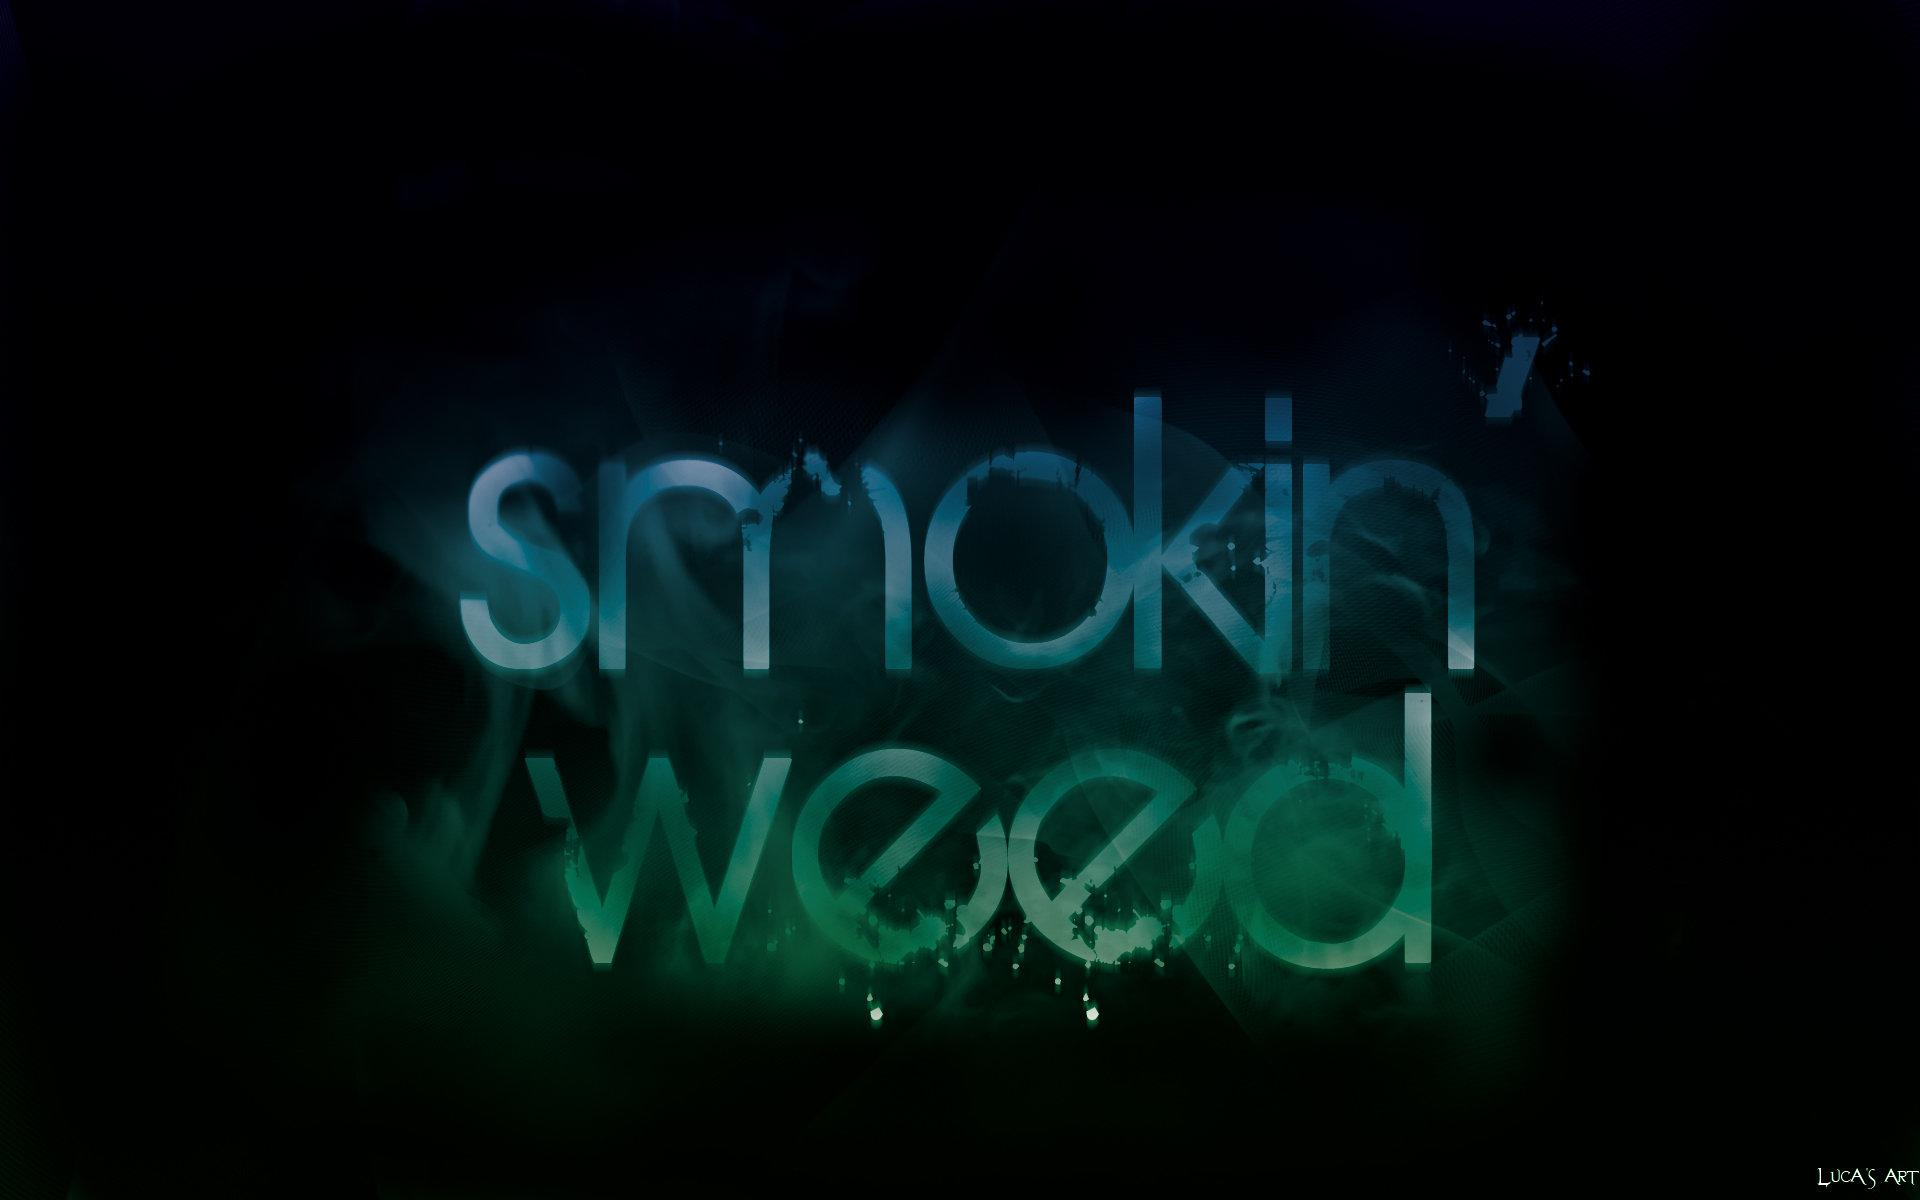 Weed Smoke Wallpapers Resolution: 1920x1200 px